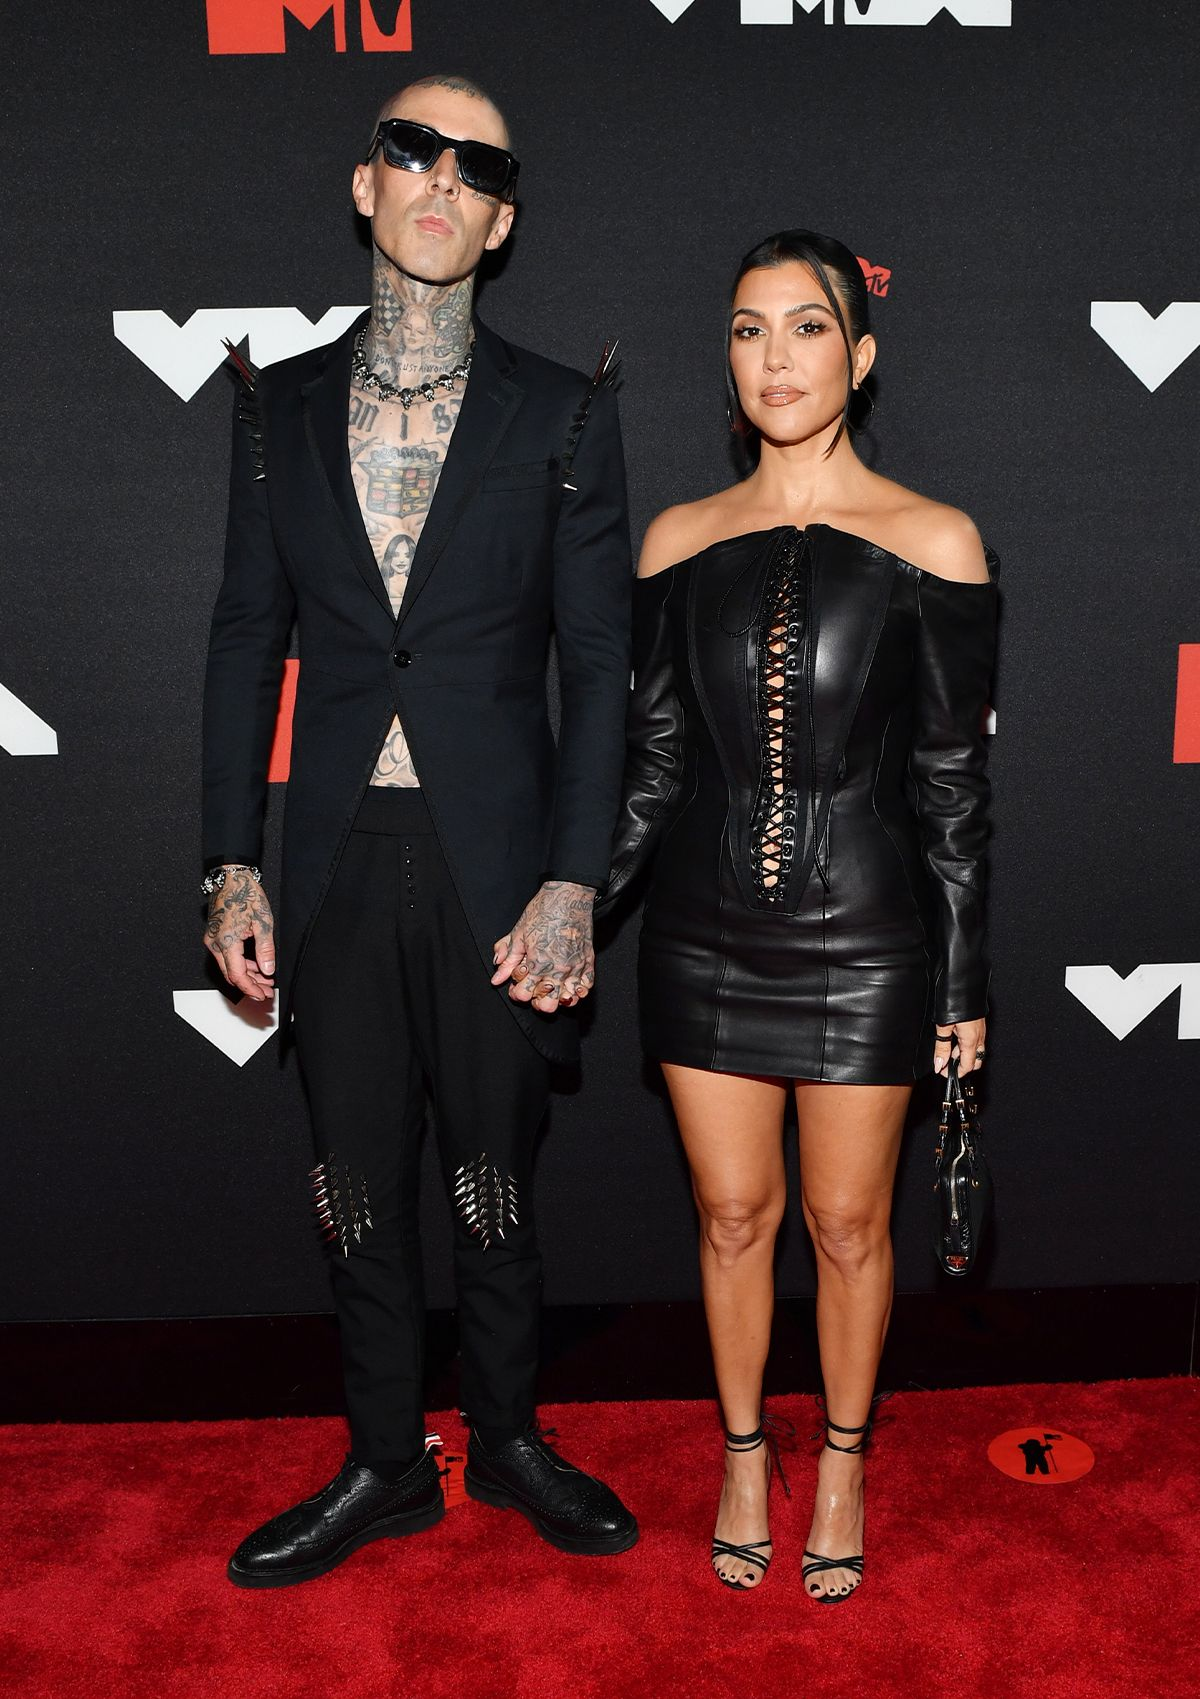 The MTV VMAs Red Carpet Looks That Shocked and Amazed Us - mtv vma red carpet 2021 295172 1631490850183